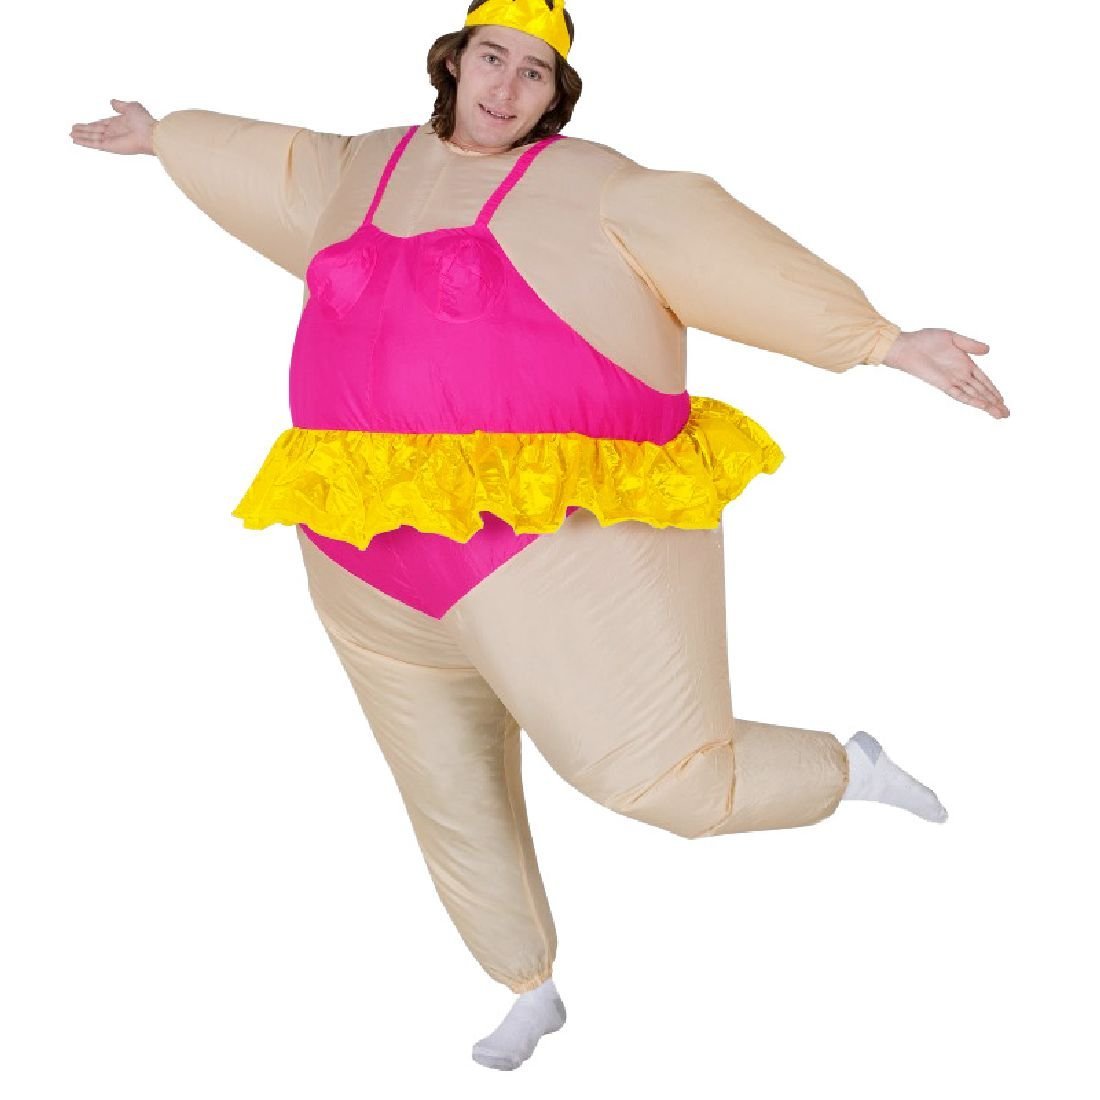 Inflatable Costume Funny Fancy Dresses Chub Suit Inflatable Ballerina Costumes